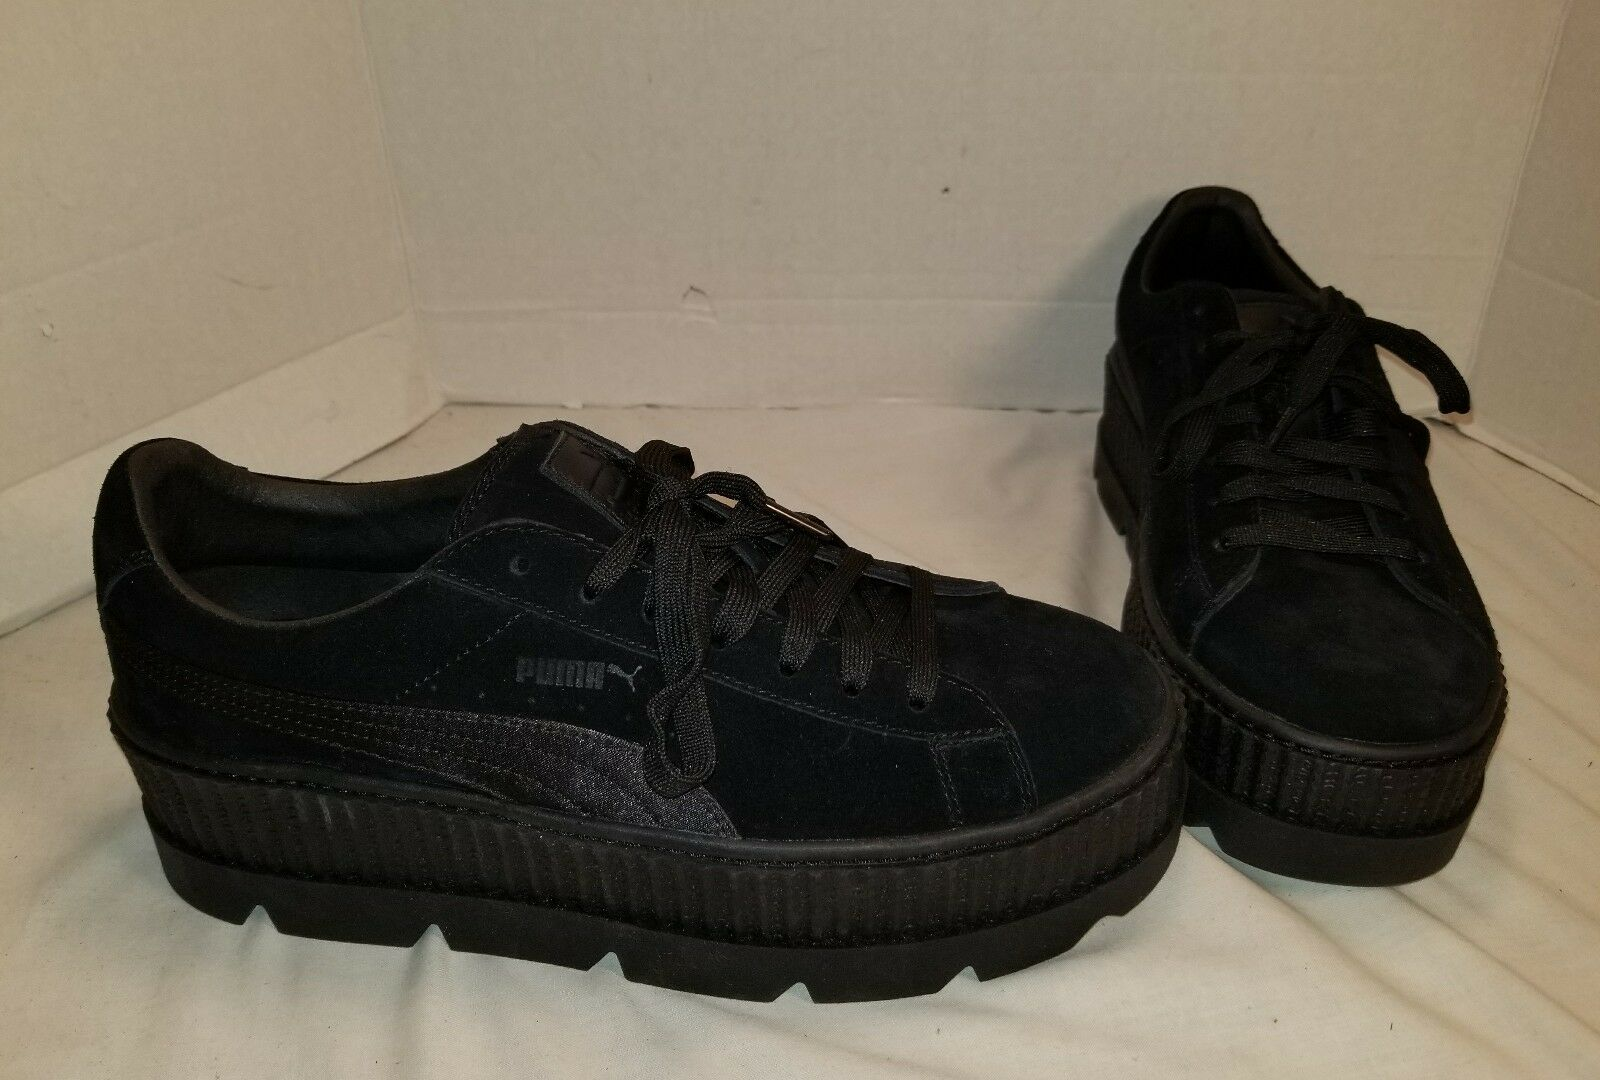 NEW PUMA FENTY BY RIHANNA CLEATED CREEPER Noir SUEDE Homme SNEAKERS US